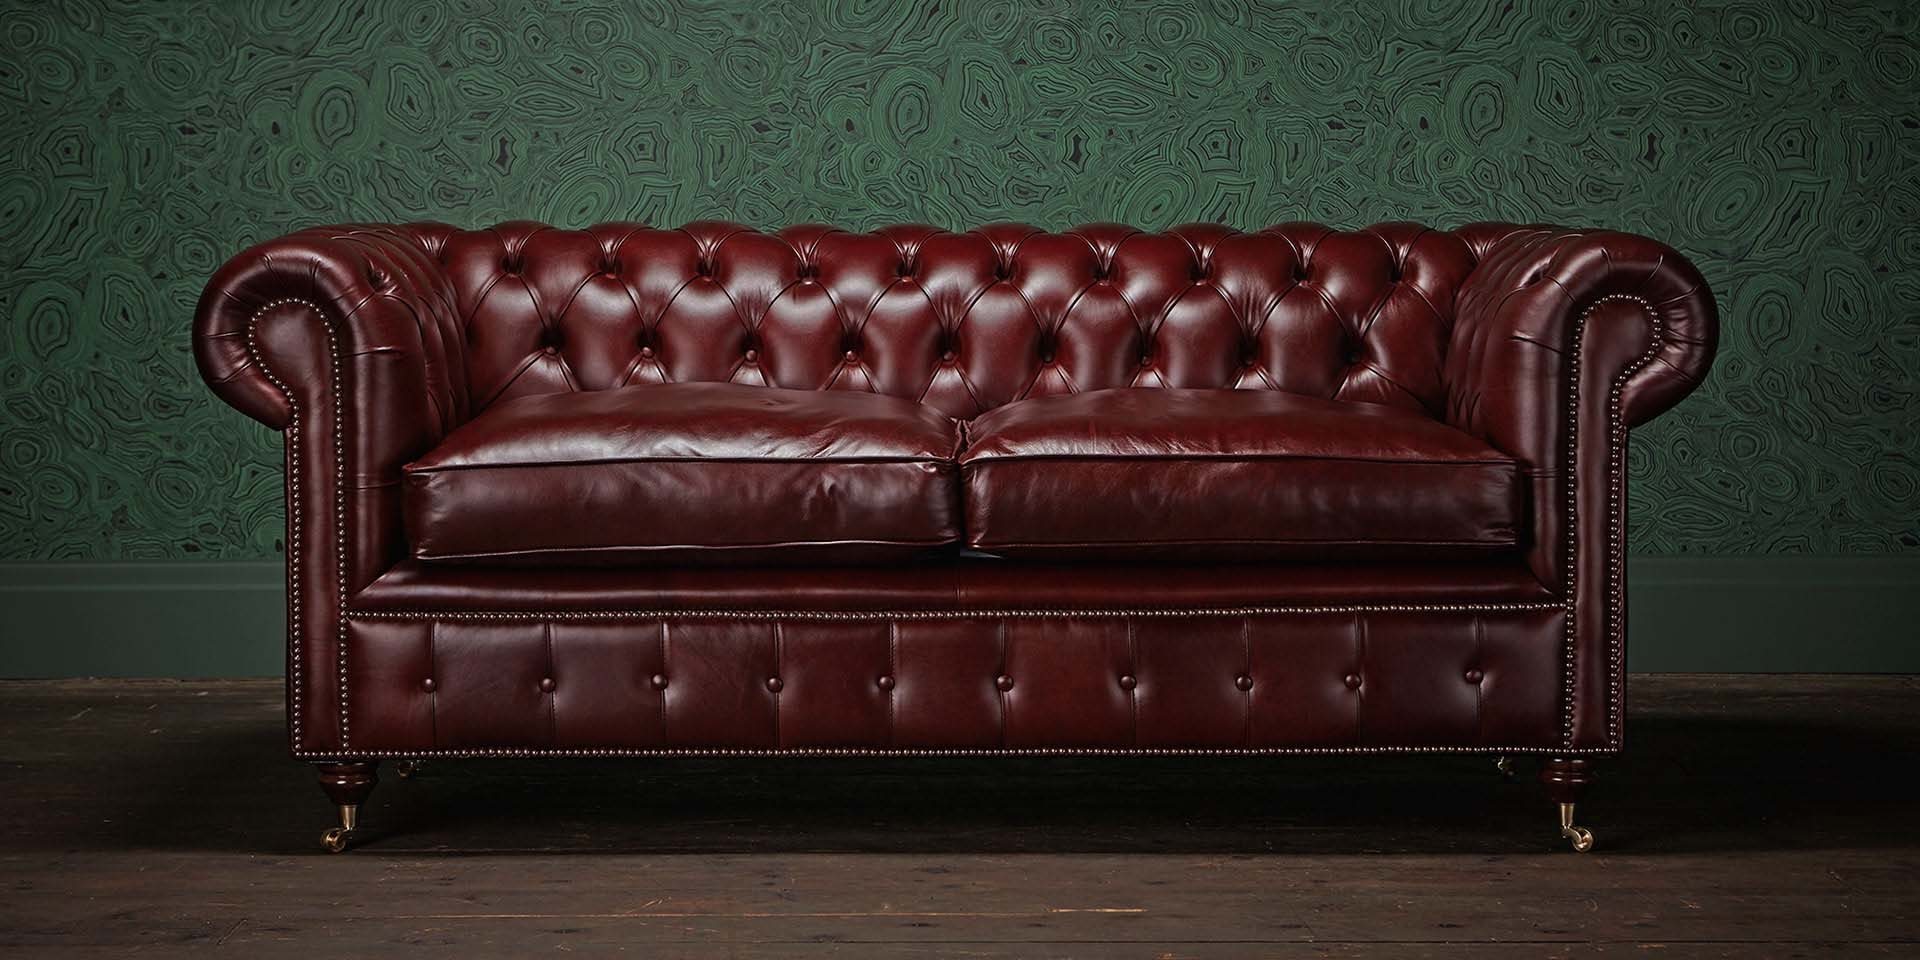 Chesterfields Of England The Original Chesterfield Company Throughout Chesterfield Sofa And Chair (Image 9 of 15)